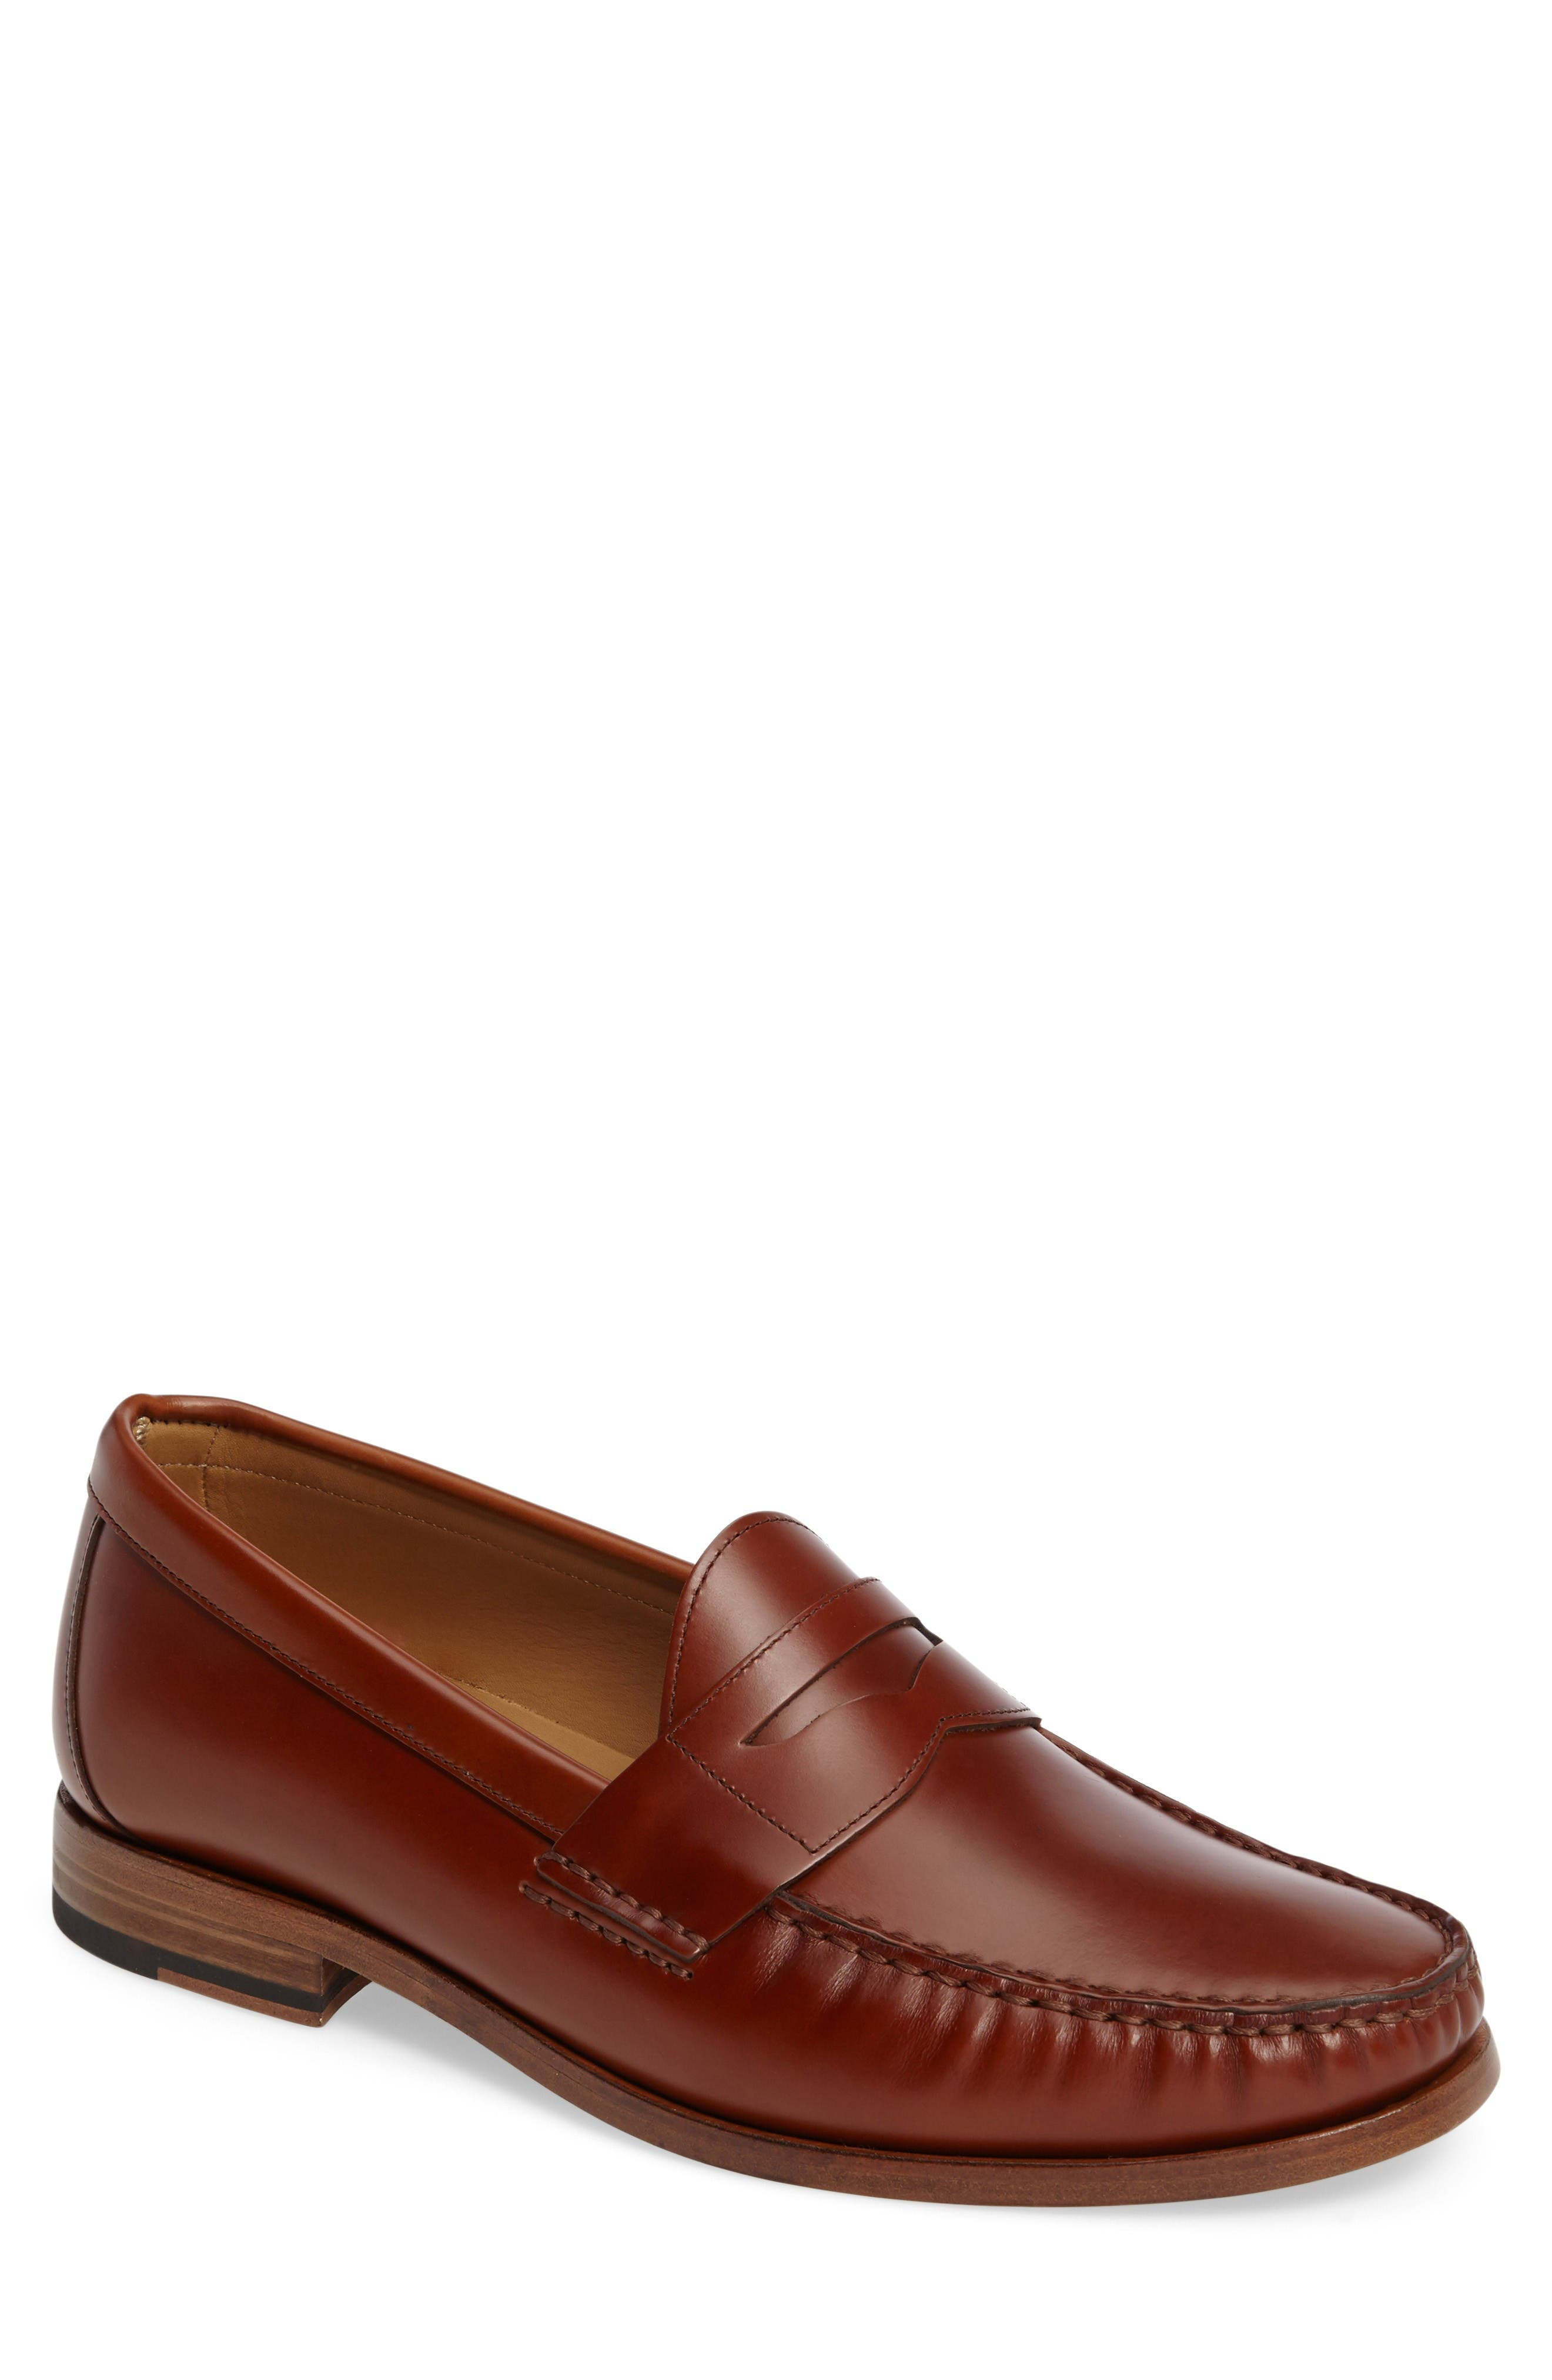 Charlie Penny Loafer,                             Main thumbnail 1, color,                             Cognac Leather